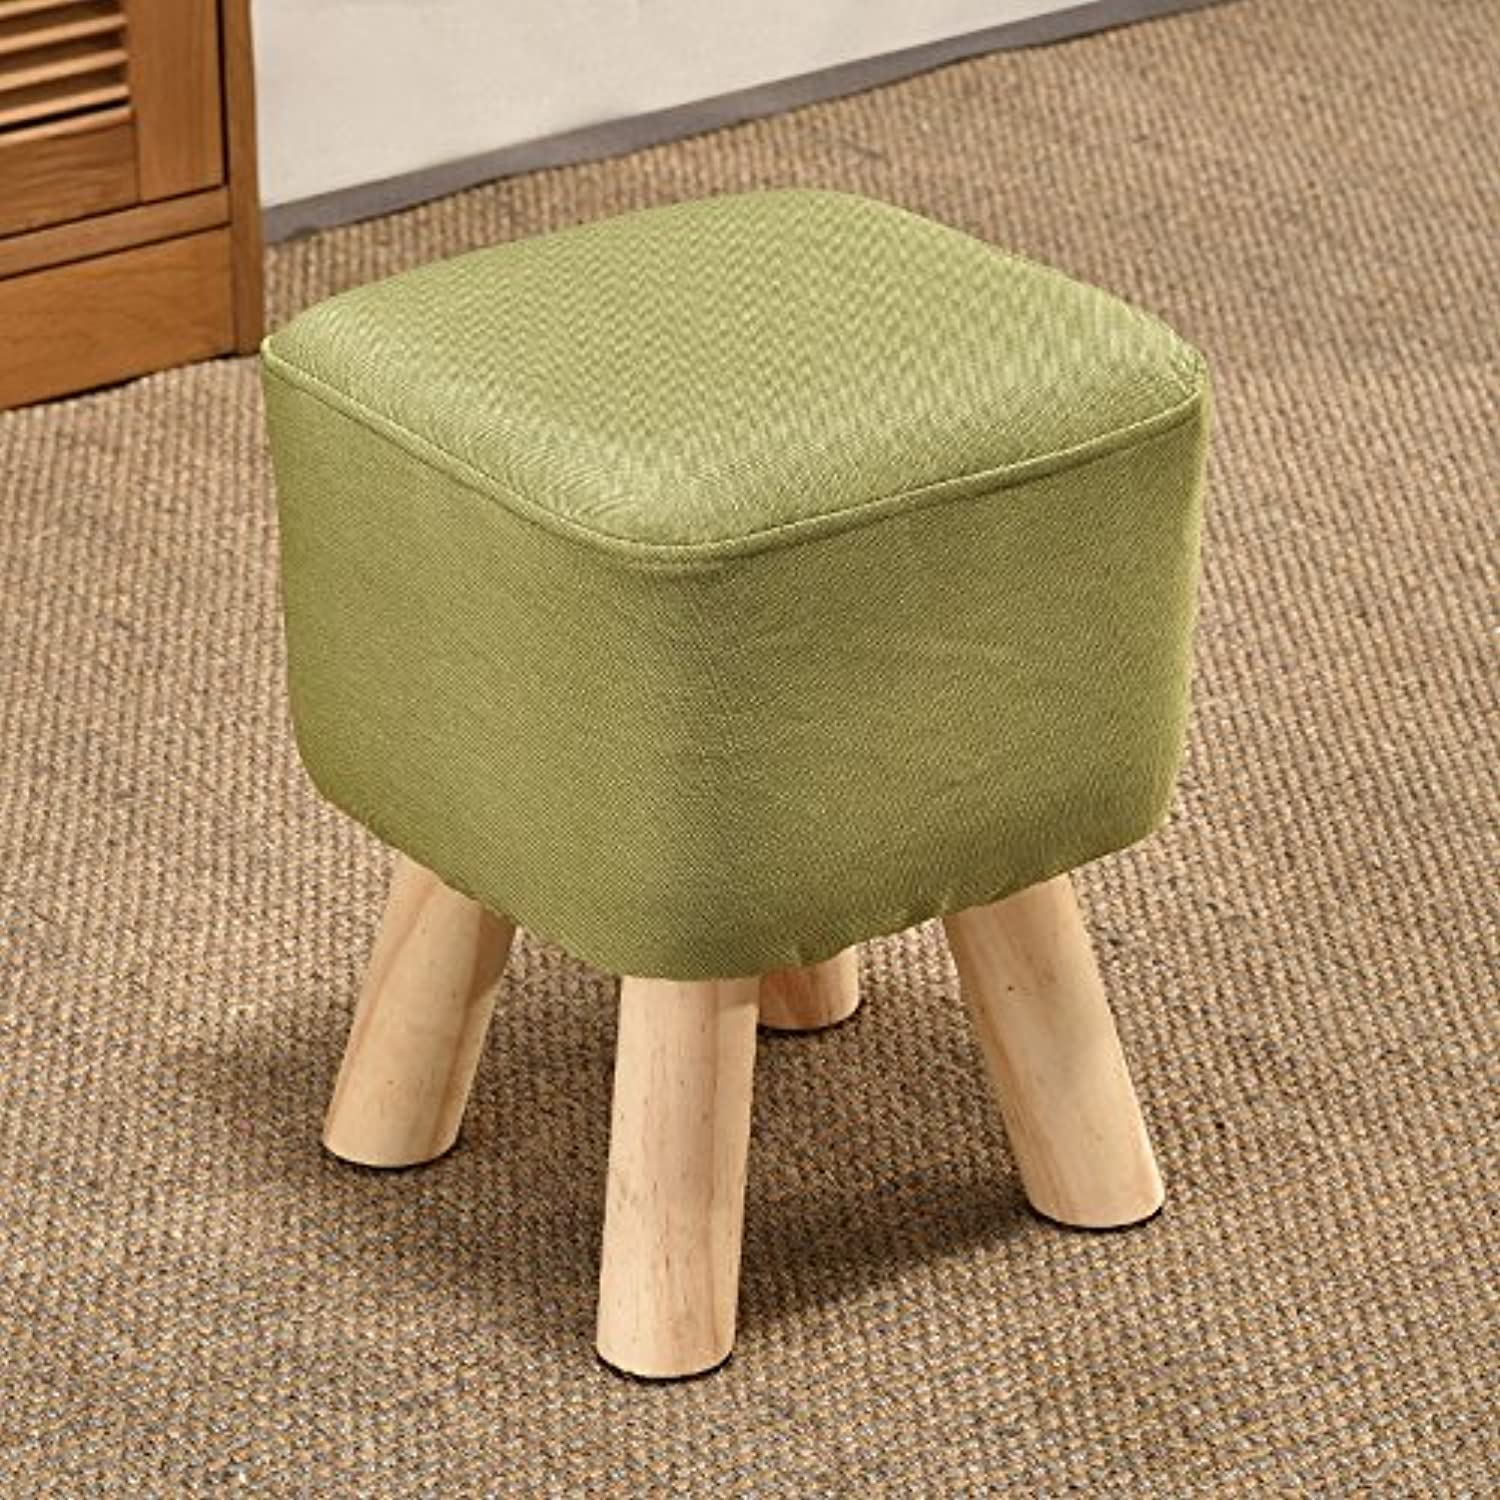 Solid Wood Stool Creative Living Room shoes Bench Fashion Fabric Sofa Stool Wooden Bench (color   C)